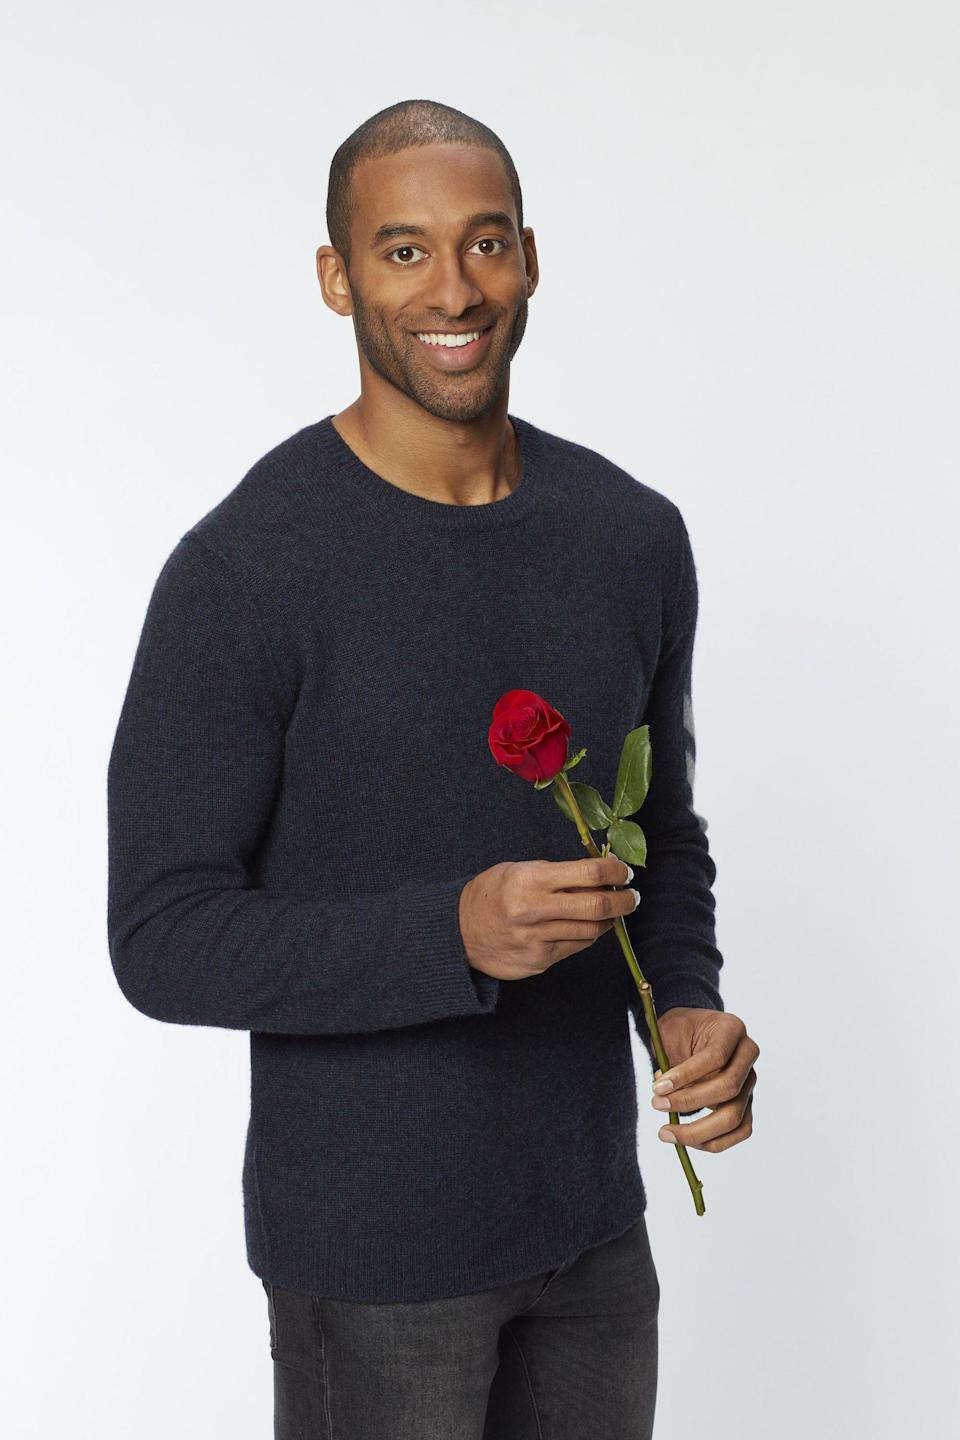 """<p><em><a href=""""https://www.cosmopolitan.com/entertainment/tv/a35022709/the-bachelor-spoilers-2021-matt-james/"""" rel=""""nofollow noopener"""" target=""""_blank"""" data-ylk=""""slk:The Bachelor"""" class=""""link rapid-noclick-resp"""">The Bachelor</a></em> has begun and we finally got to meet <a href=""""https://www.cosmopolitan.com/entertainment/tv/a32849714/bachelor-matt-james/"""" rel=""""nofollow noopener"""" target=""""_blank"""" data-ylk=""""slk:Matt James'"""" class=""""link rapid-noclick-resp"""">Matt James'</a> new contestants! And lemme tell you right now, this group of women is wildly impressive. I mean, what other season had DJs, ballerinas, pageant winners, TikTokers, <em>and</em> someone strongly opposed to pyramid schemes all living under one roof?? Oh, and I didn't even mention how one of these ladies fully dated Matt already. Now that the show is officially under way, let's get to know the 40+ women who are competing for a rose and Matt's heart—<a href=""""https://www.cosmopolitan.com/entertainment/tv/a34951053/matt-james-season-the-bachelor-contestant-bachelor-nation/"""" rel=""""nofollow noopener"""" target=""""_blank"""" data-ylk=""""slk:including a Bachelor Nation alum."""" class=""""link rapid-noclick-resp"""">including a Bachelor Nation alum.</a><br></p>"""